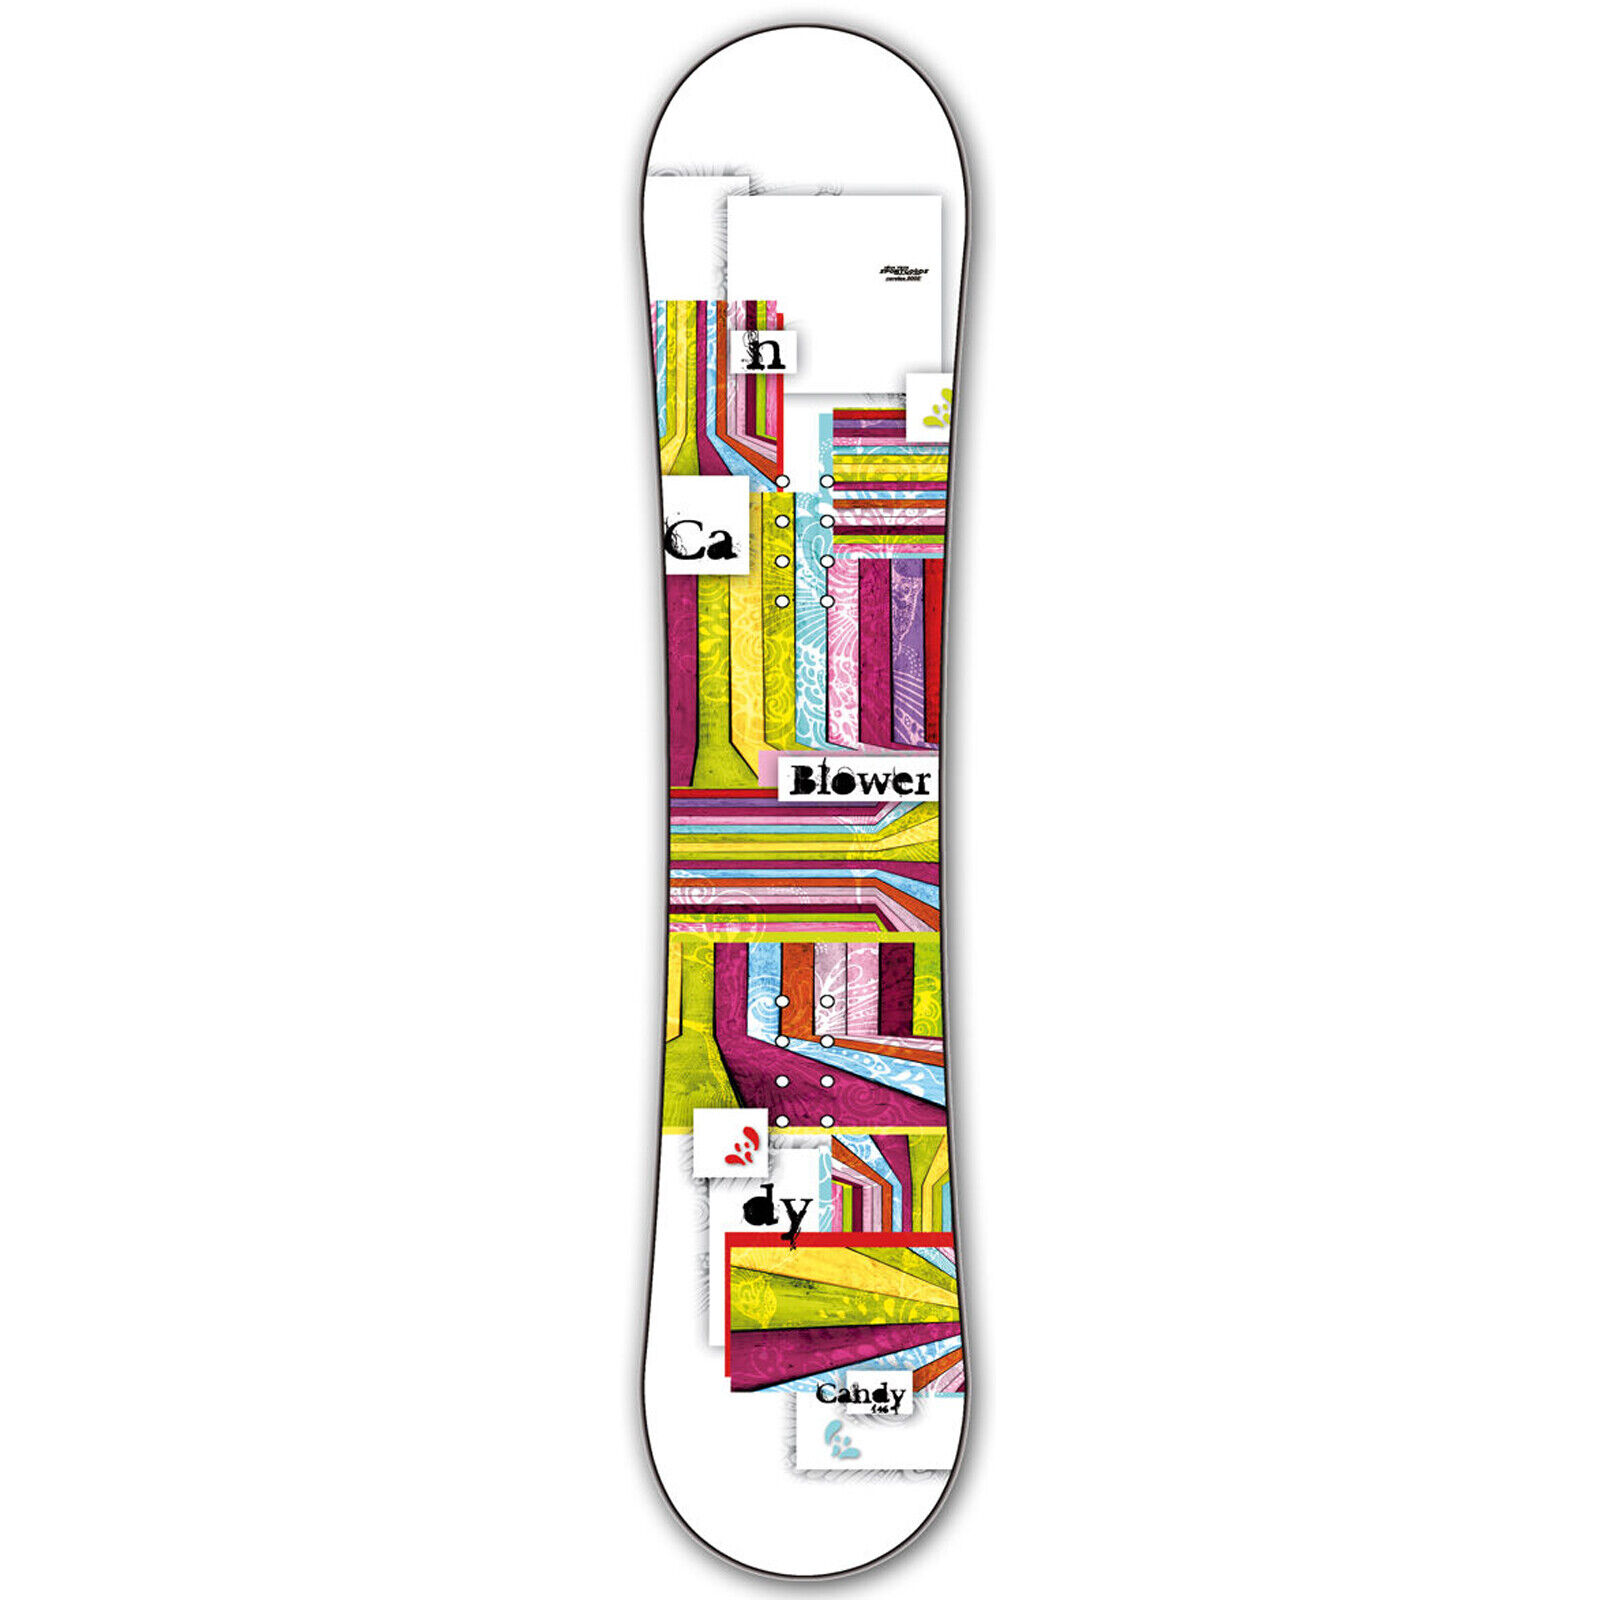 Snowboard Mujer  Blower Candy Girl  141cm blanco Camber